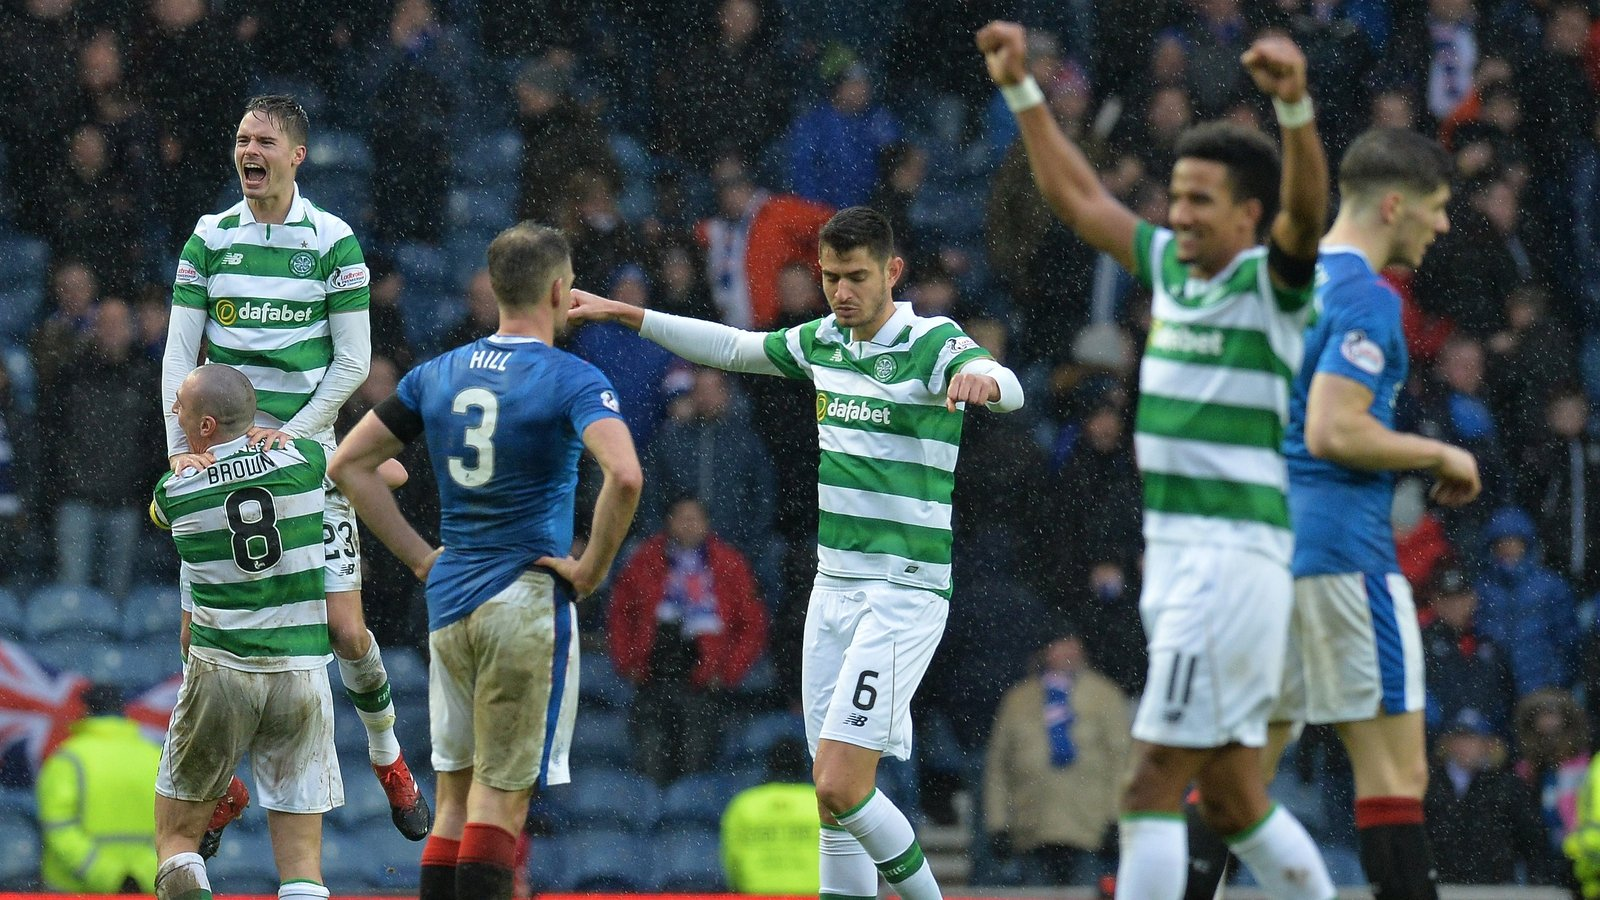 O** F*** rivals to meet in Scottish Cup semi-final